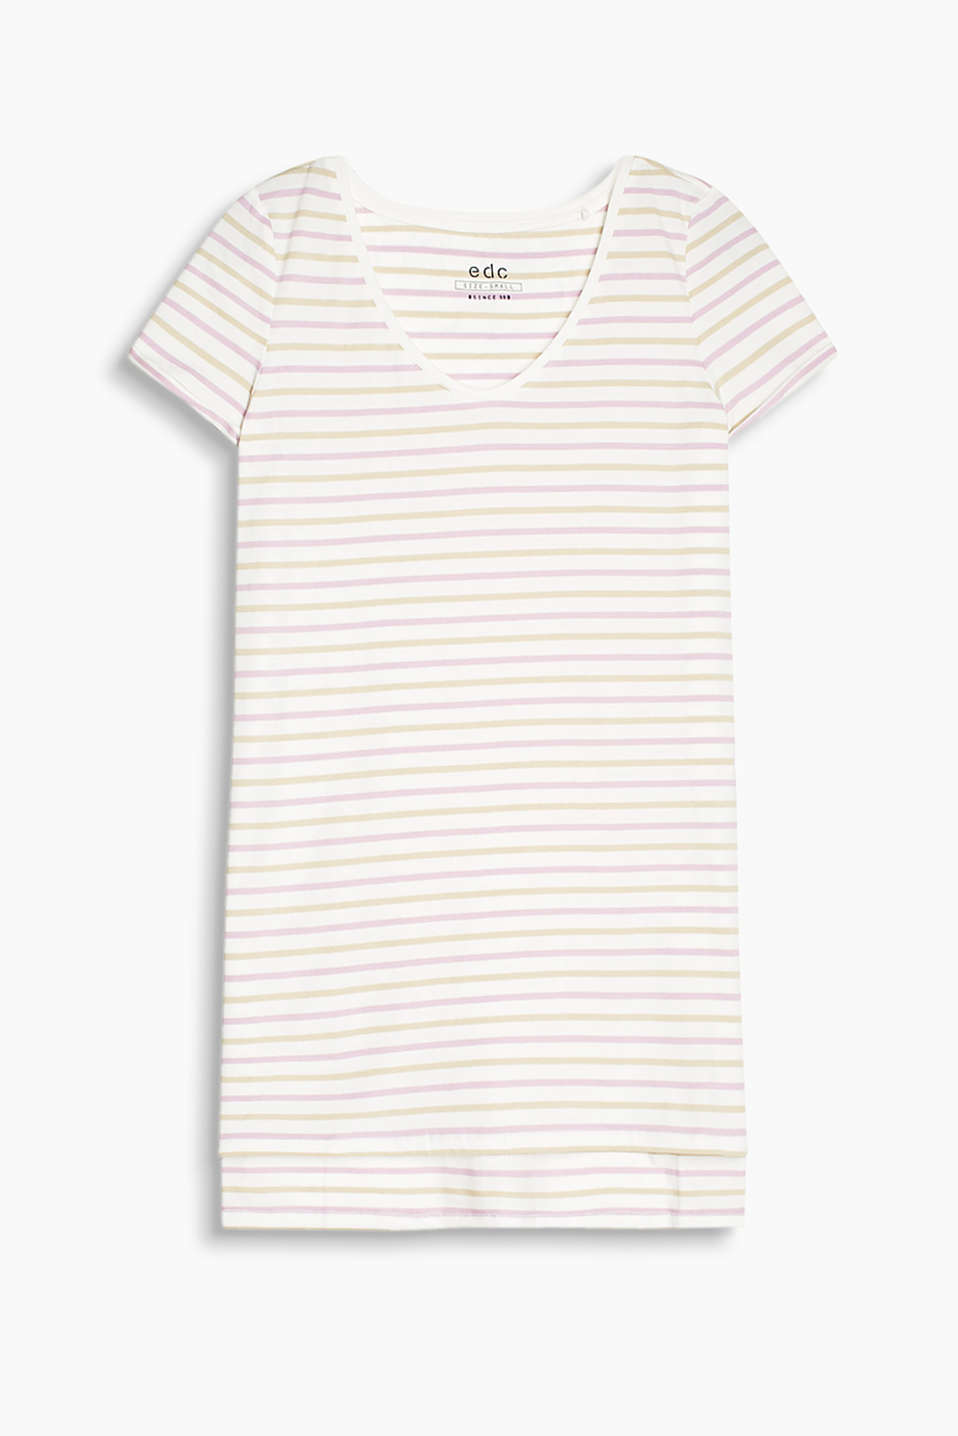 Long, striped T-shirt made of stretchy cotton-jersey with a slit, high-low hem